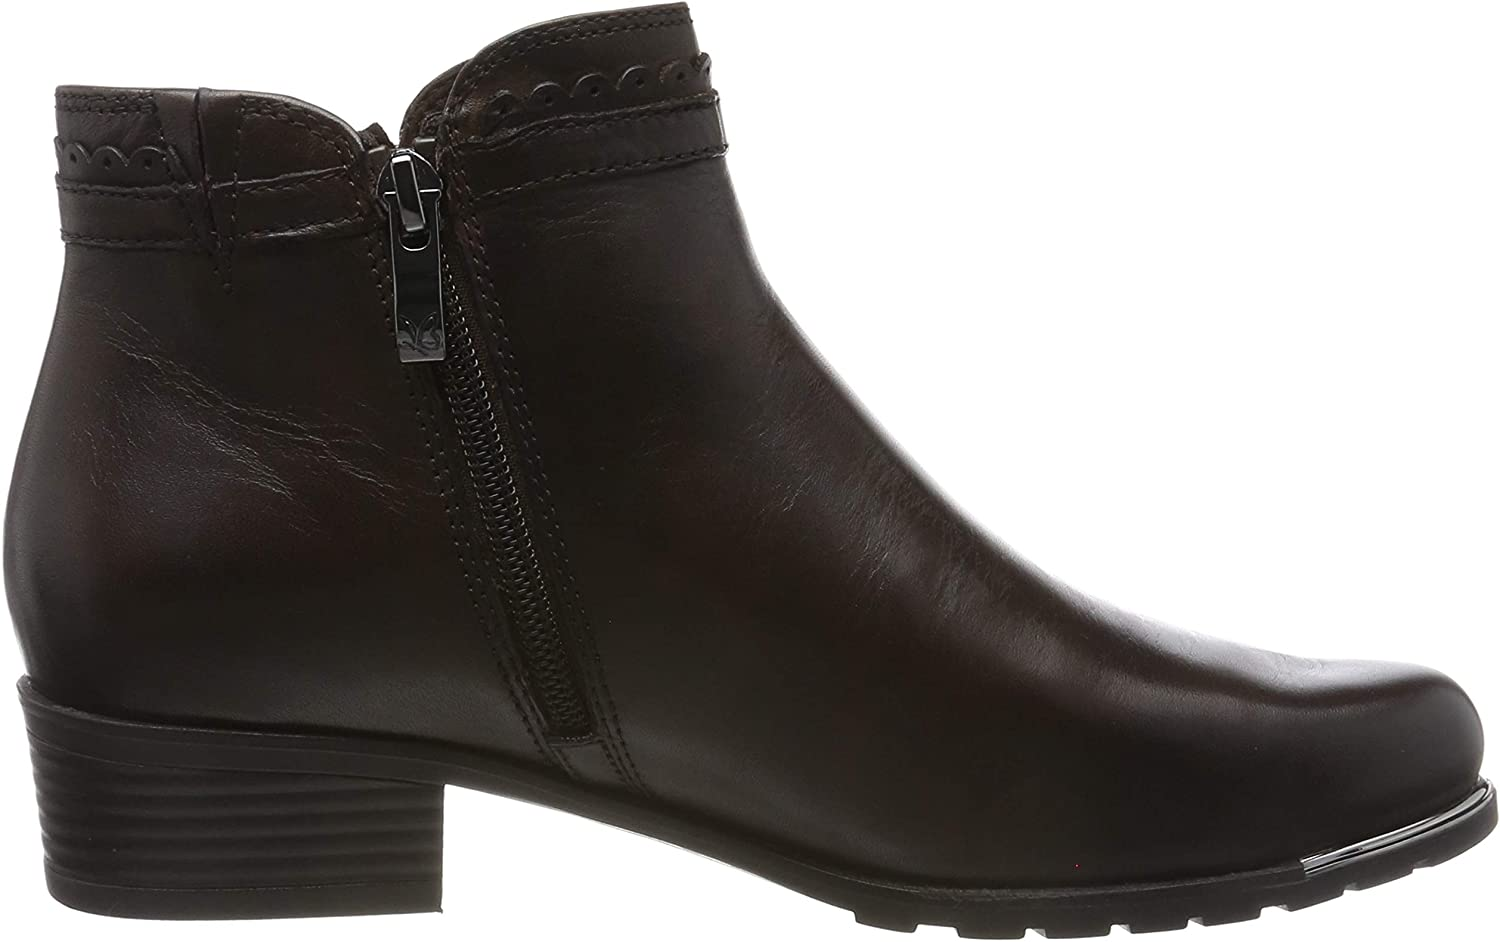 CAPRICE Women's Kelli Ankle Boots